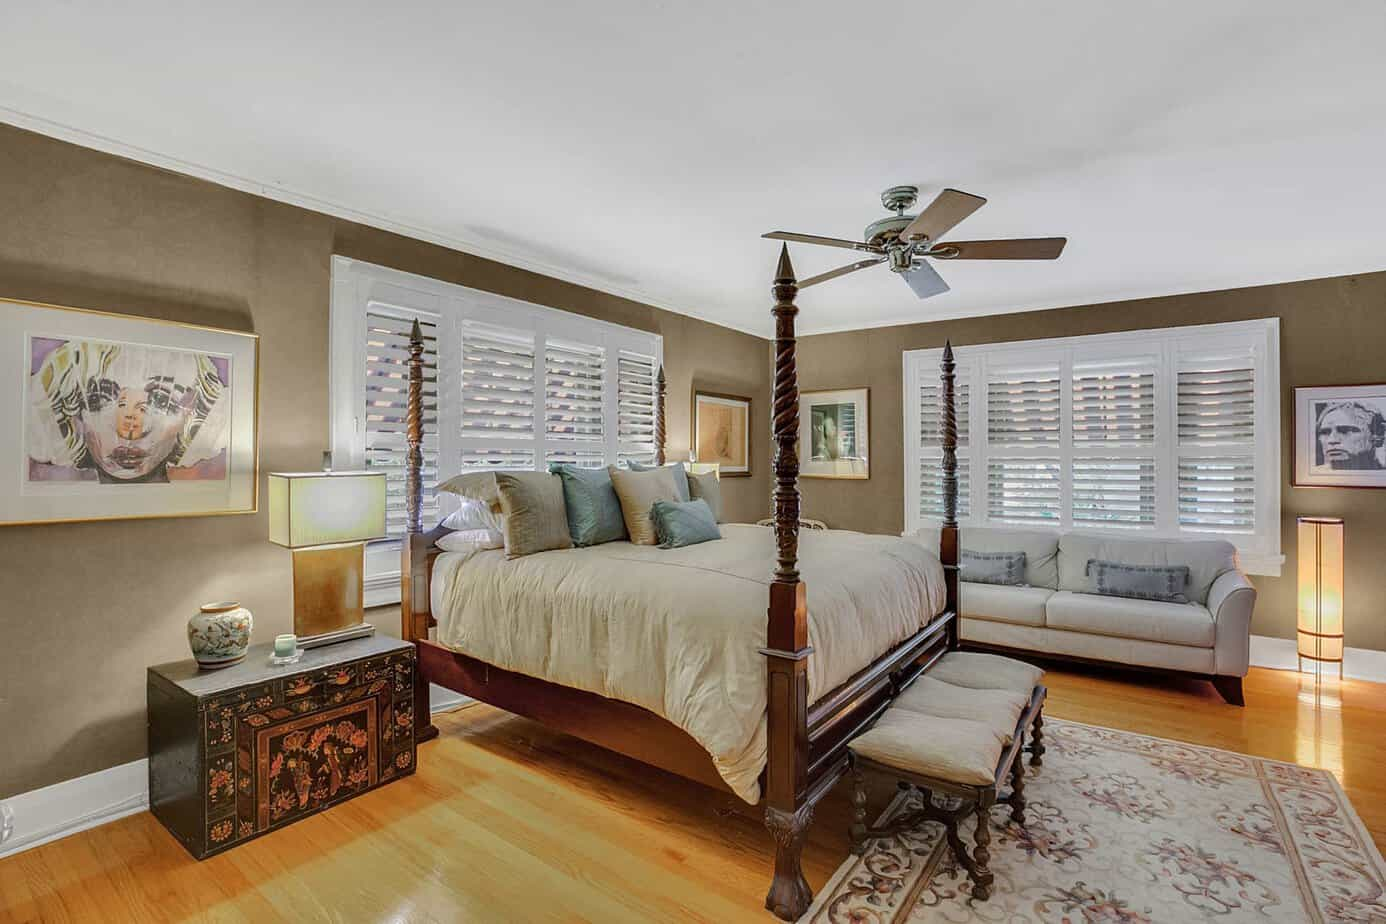 One of the Dual Master bedrooms in the the historic south tampa estate home for sale at 4024 W Bay To Bay Blvd. Tampa FL 33629 with wood floors, two windows, king sized bed, and artwork